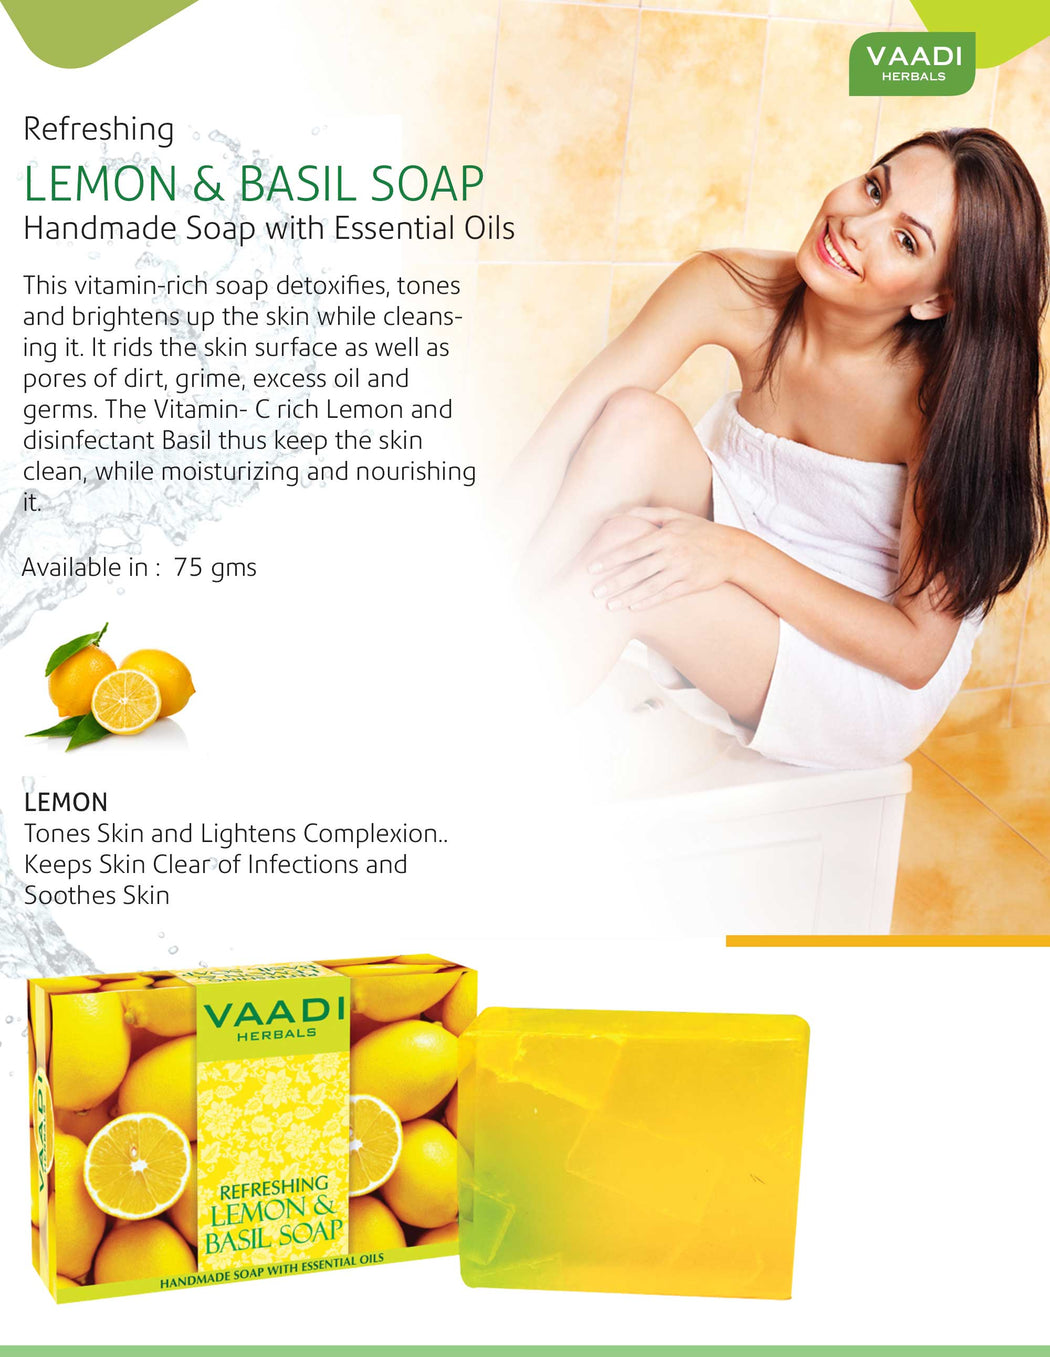 Refreshing Organic Lemon & Basil Soap - Tones & Brightens Skin (3 x 75 gms / 2.7 oz)